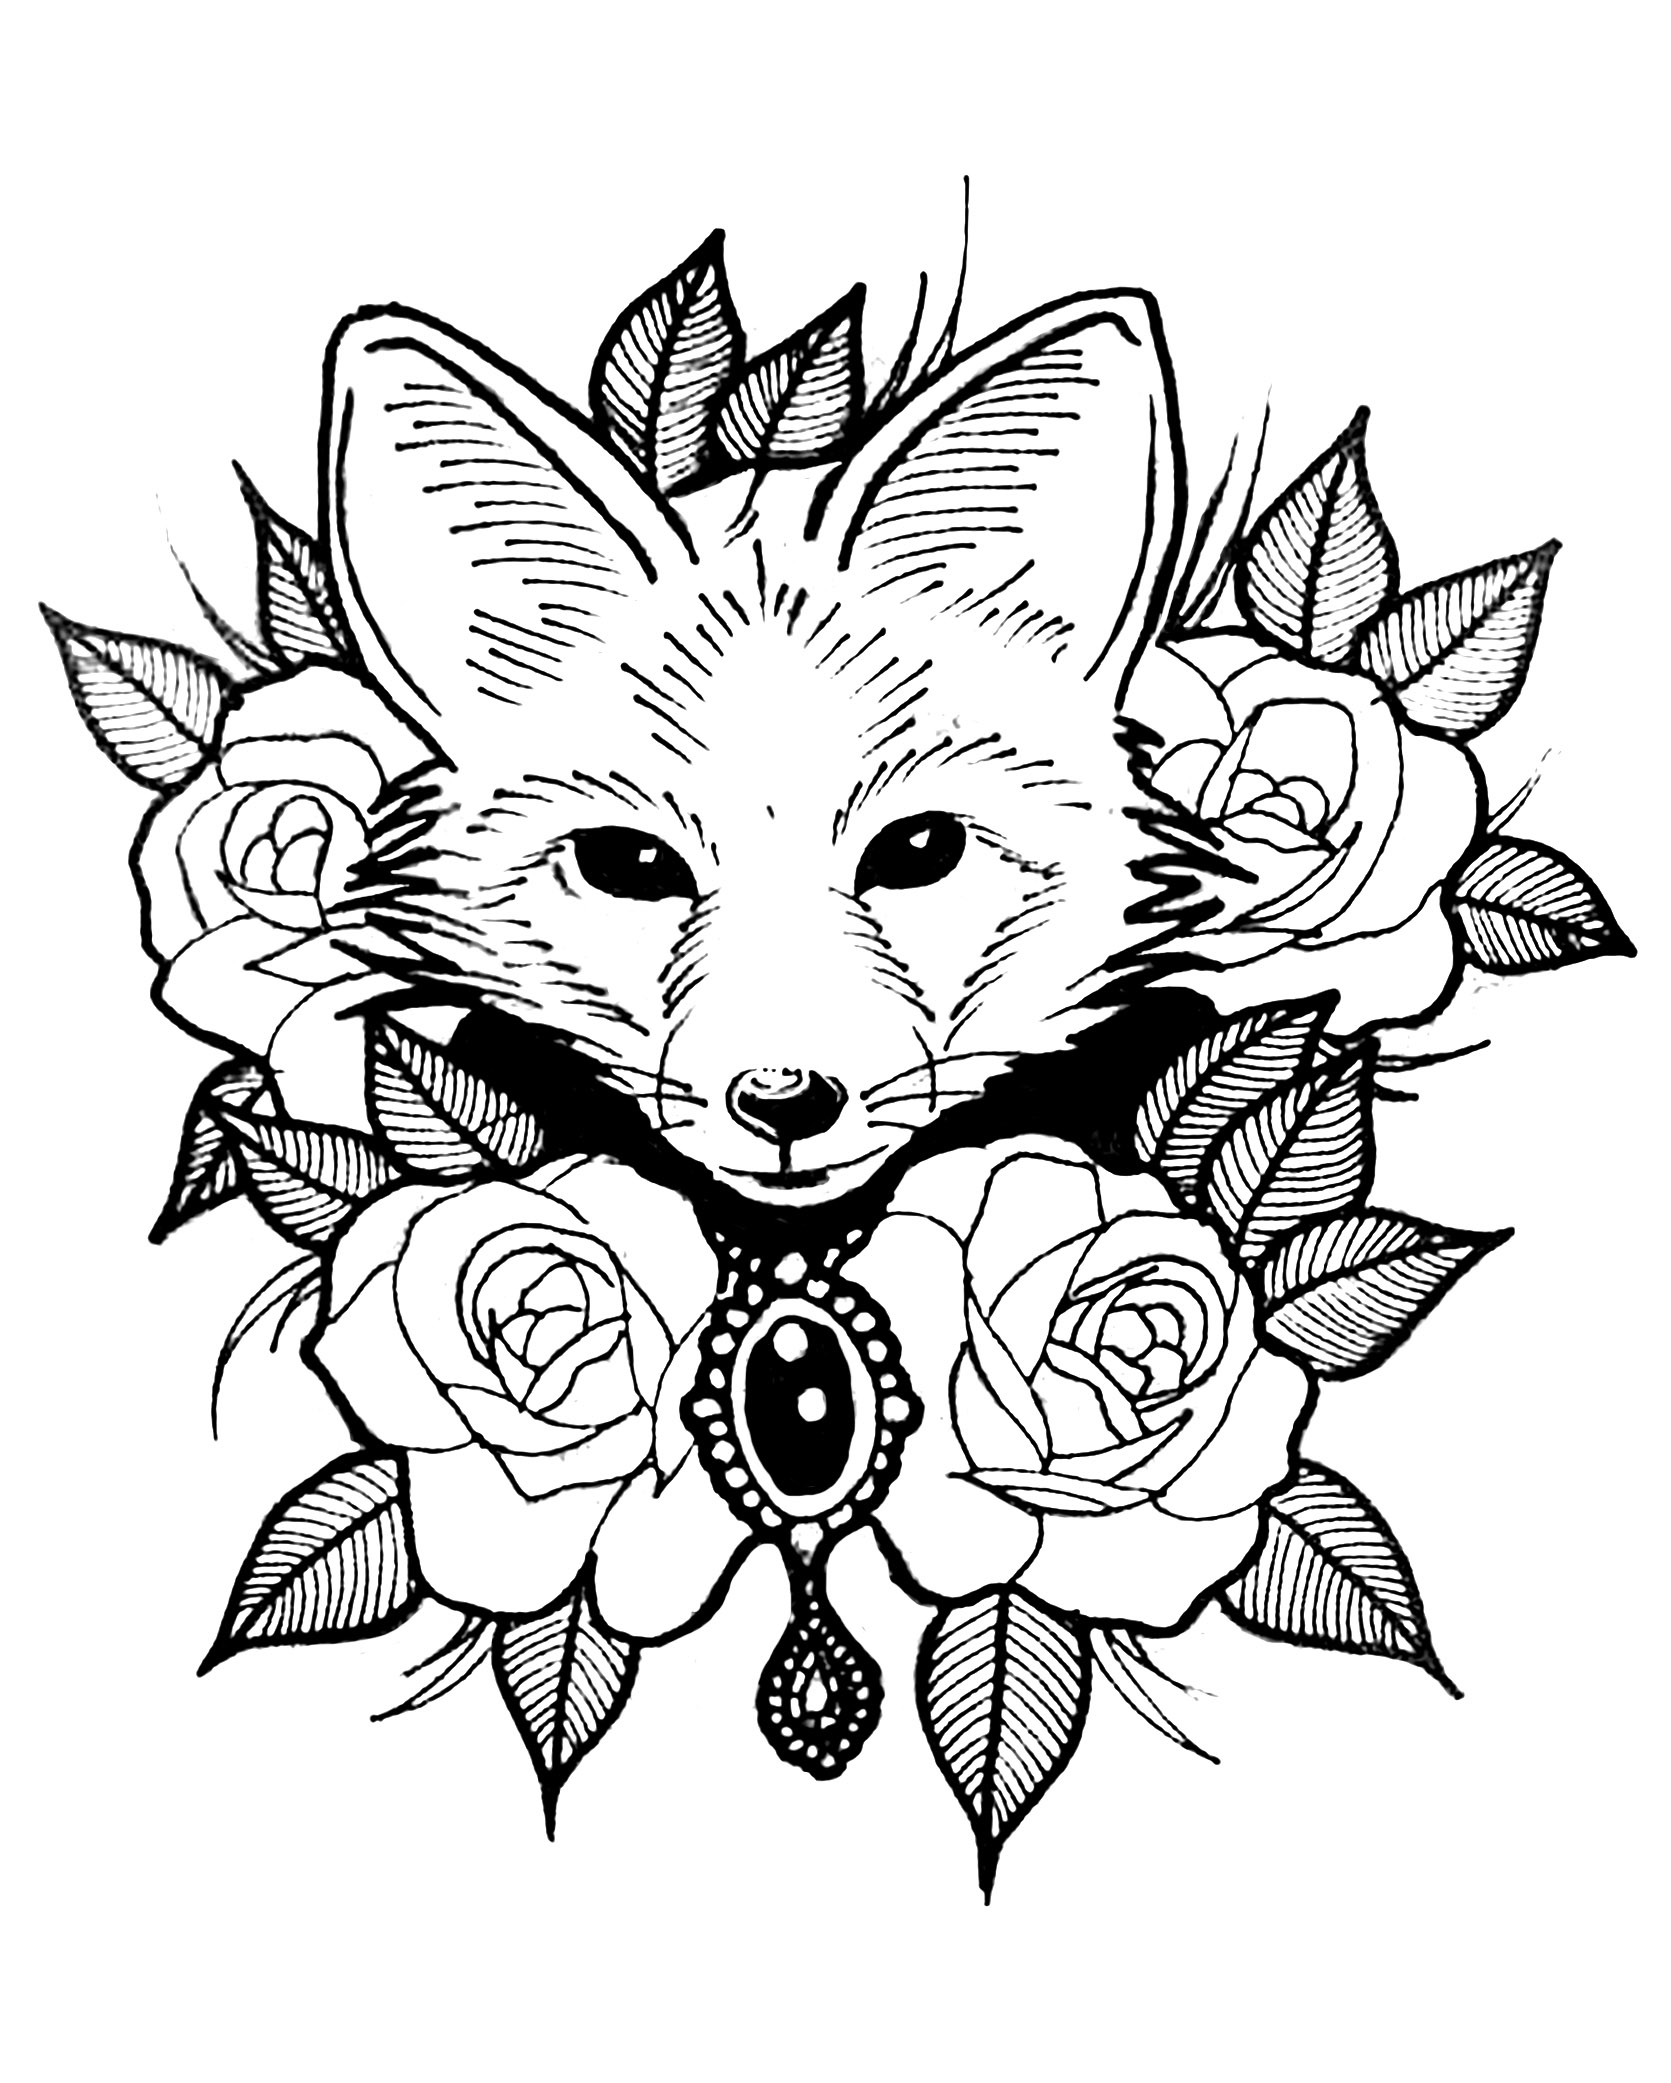 Wolf mandala coloring pages - Coloring Page Cute Fox With Roses Free To Print